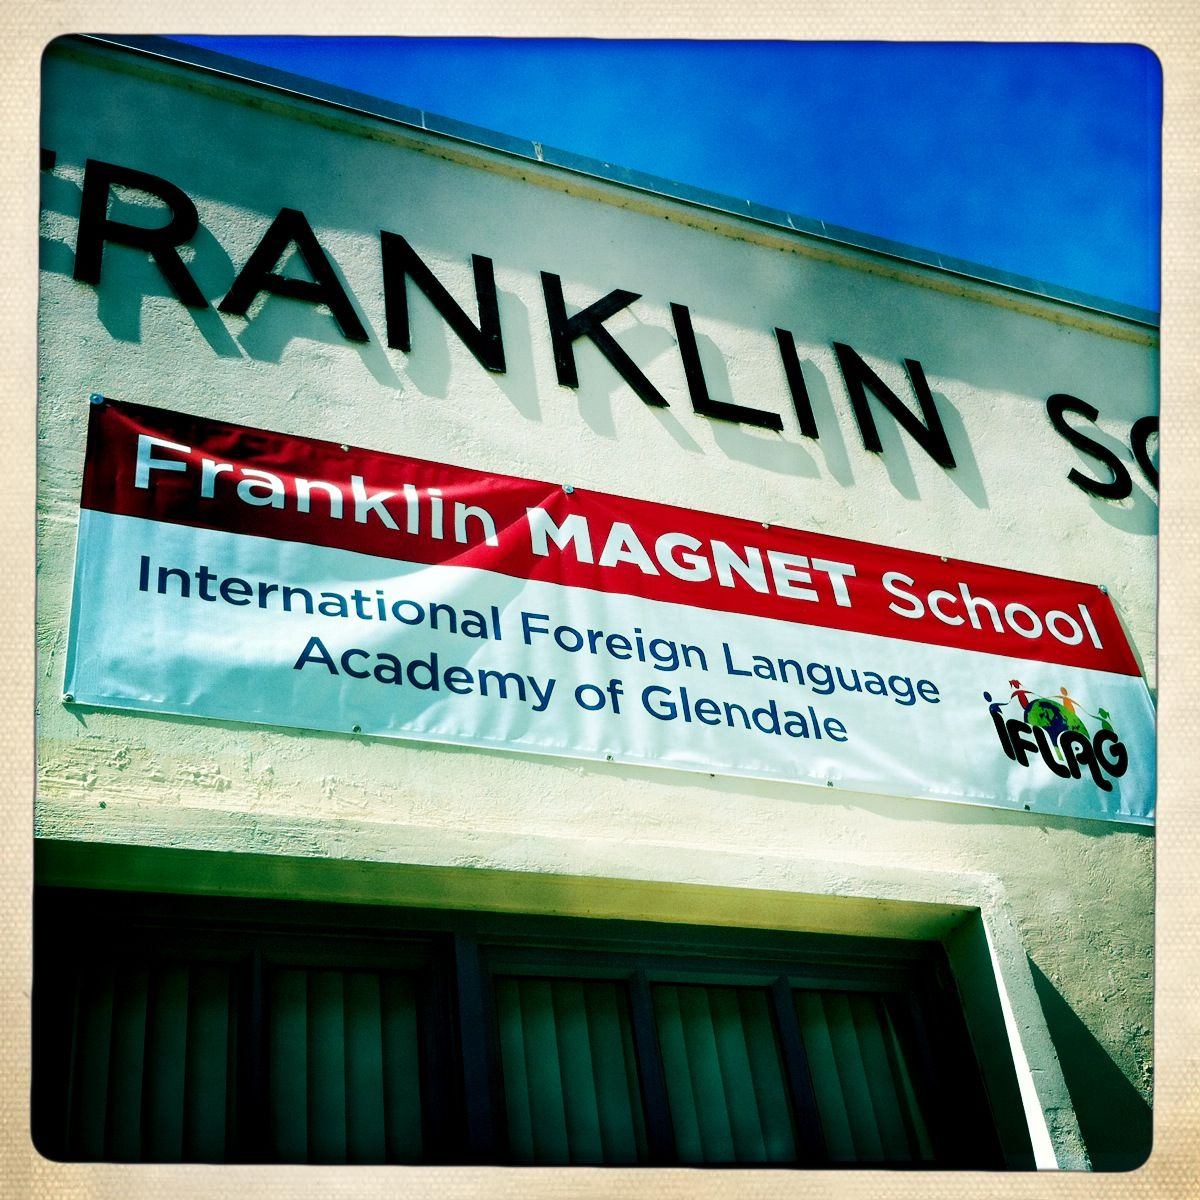 Franklin Magnet School International Foreign Language Academy of Glendale